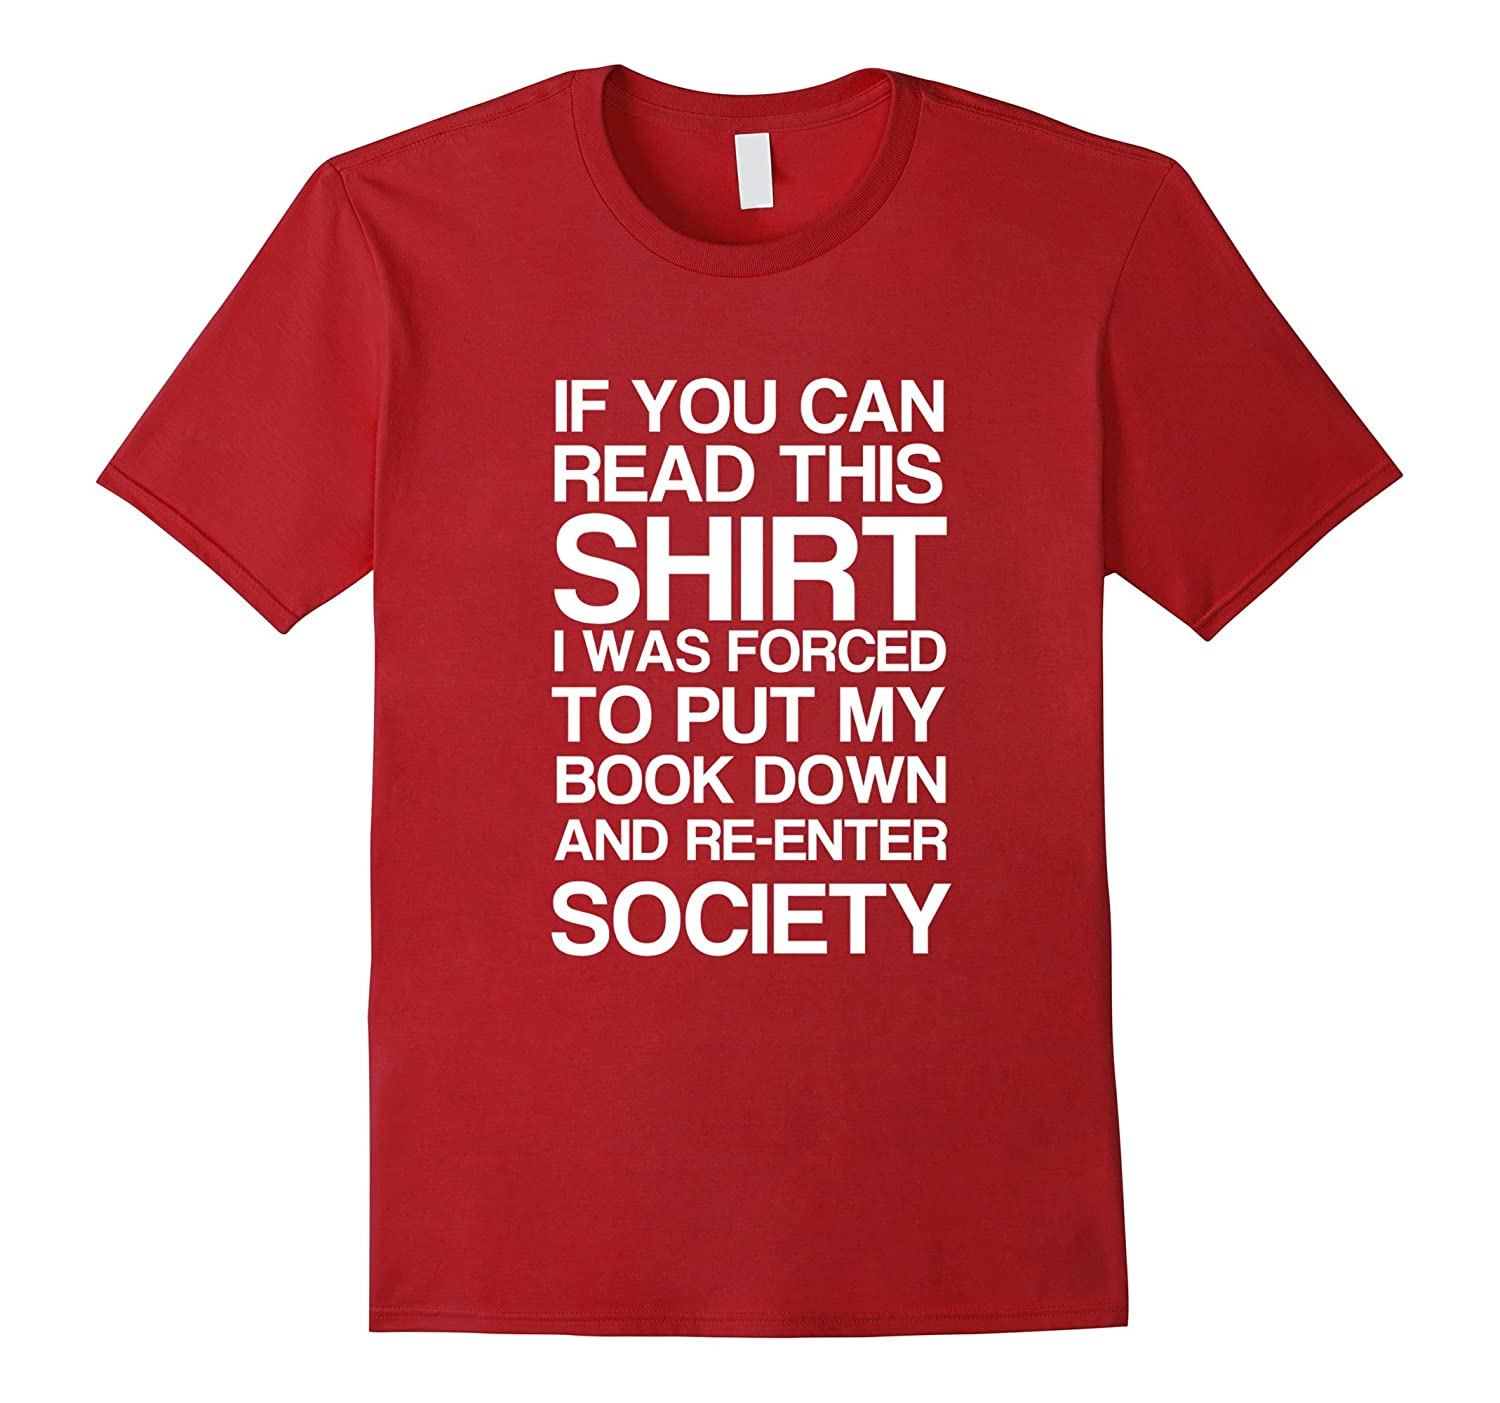 If you can read this shirt I put my book down funny t-shirt-CL